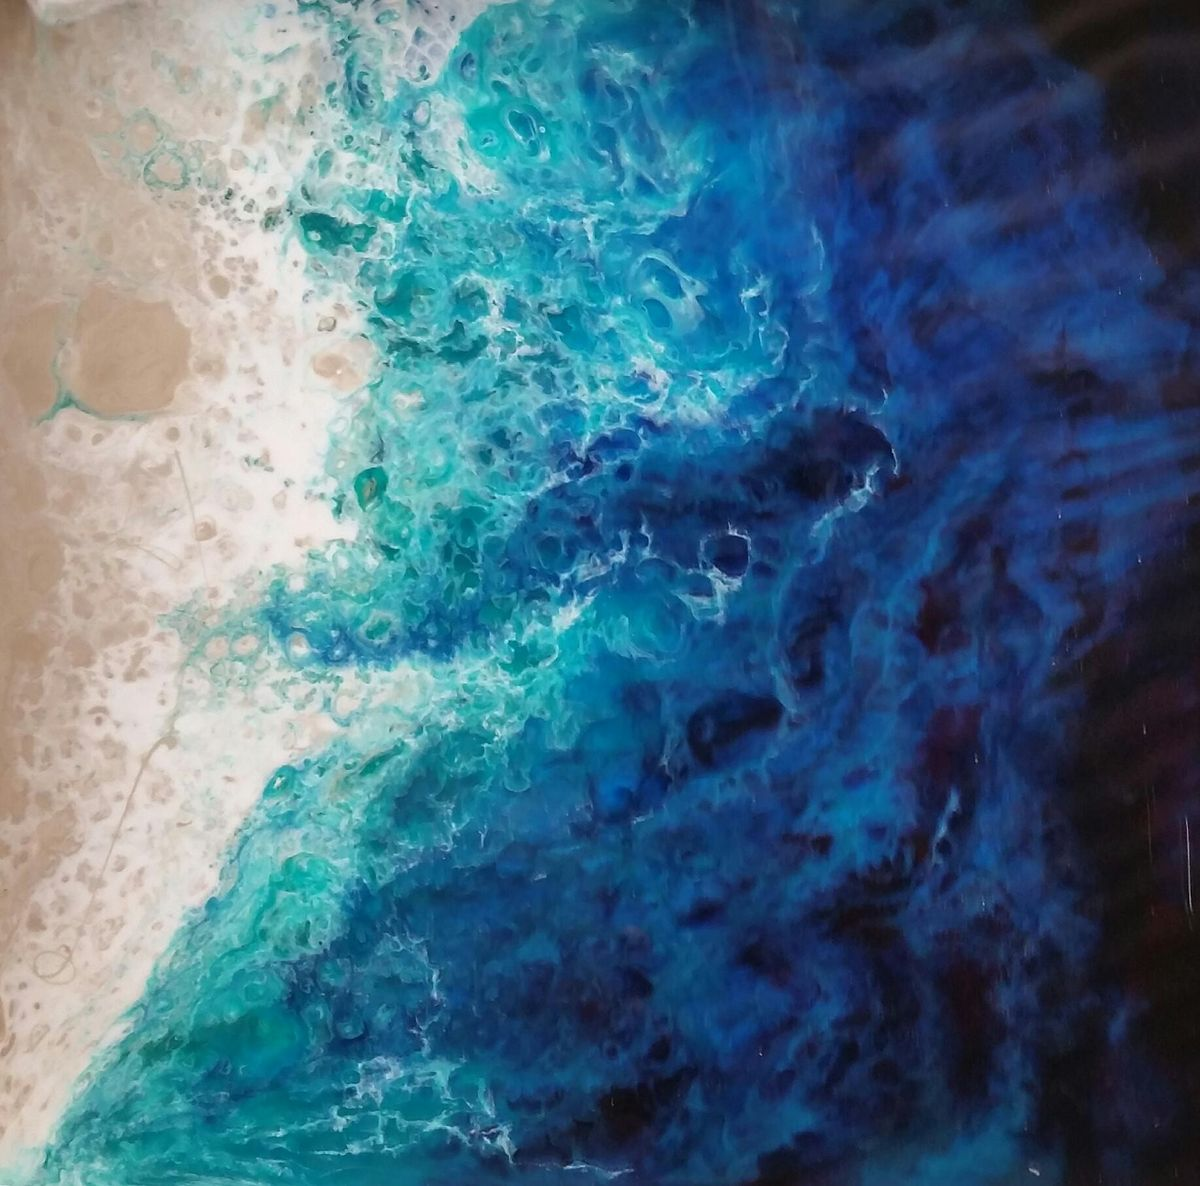 Resin Art Workshop for Beginners, 23 January | Event in Somerton Park | AllEvents.in